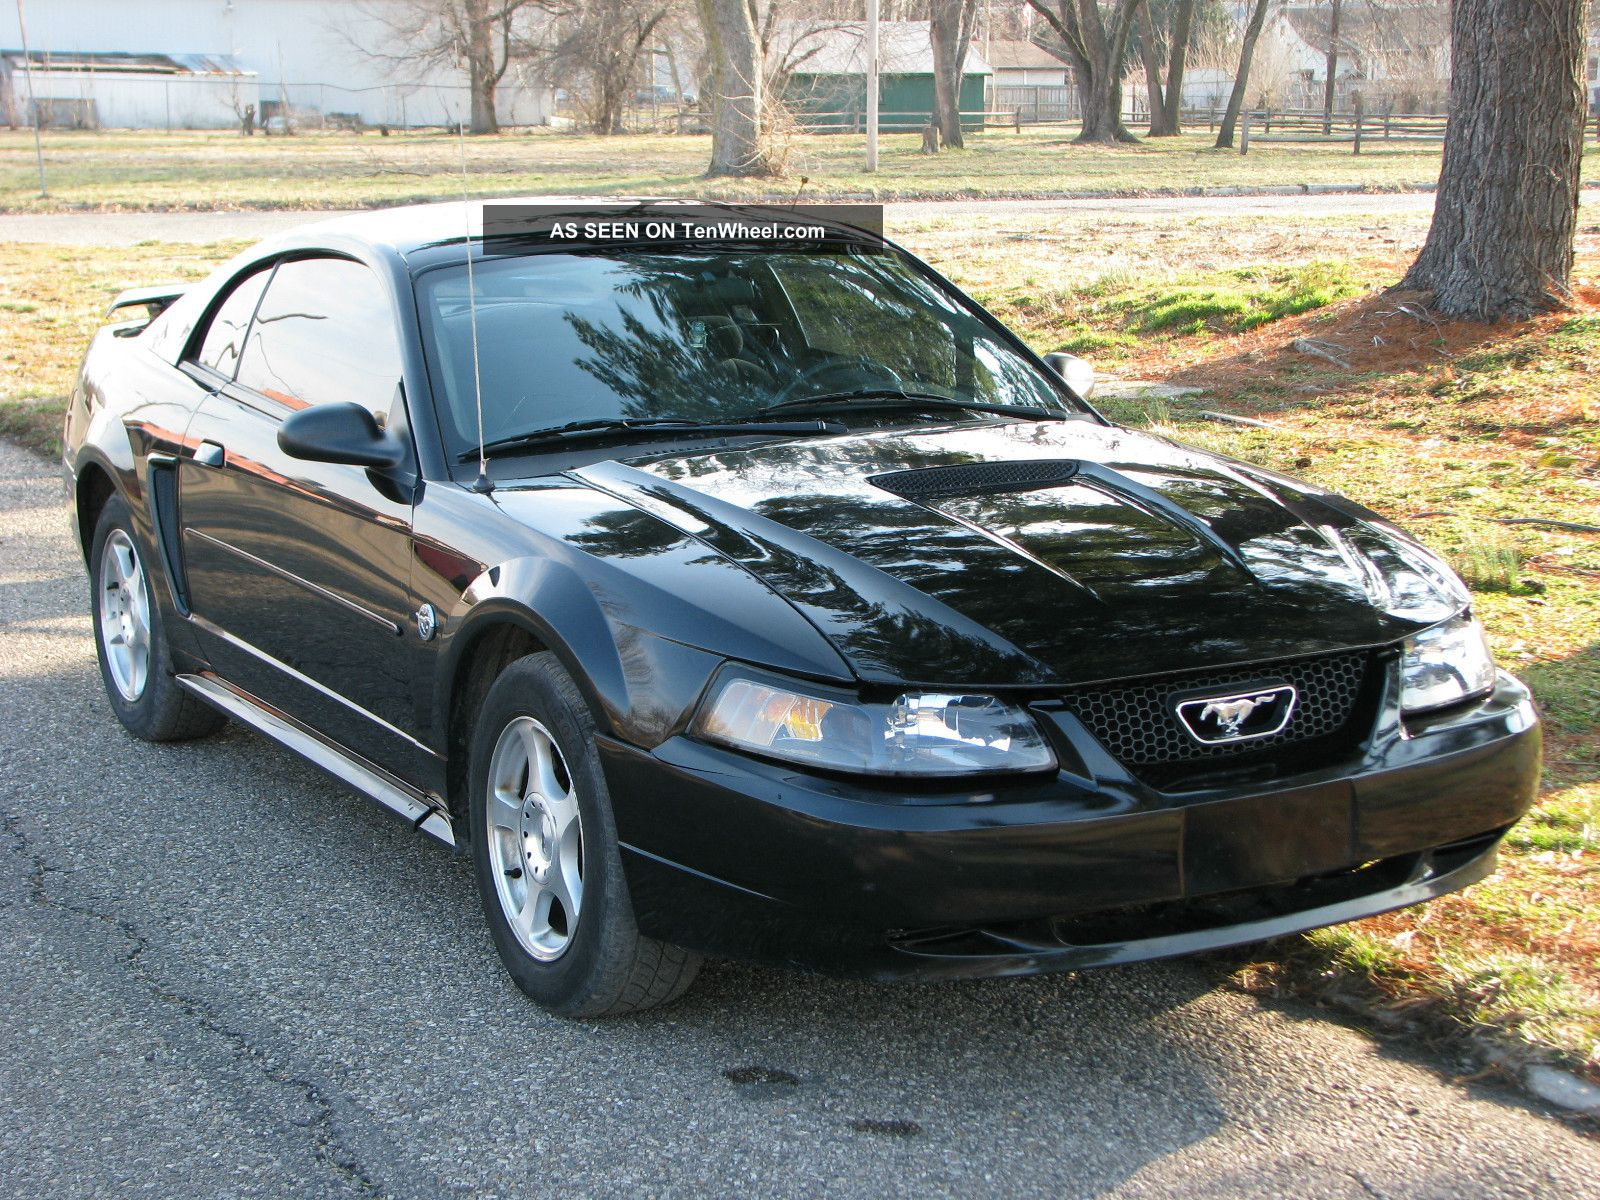 2004 40th anniv mustang v6 at pw pl ps remote keyless entry